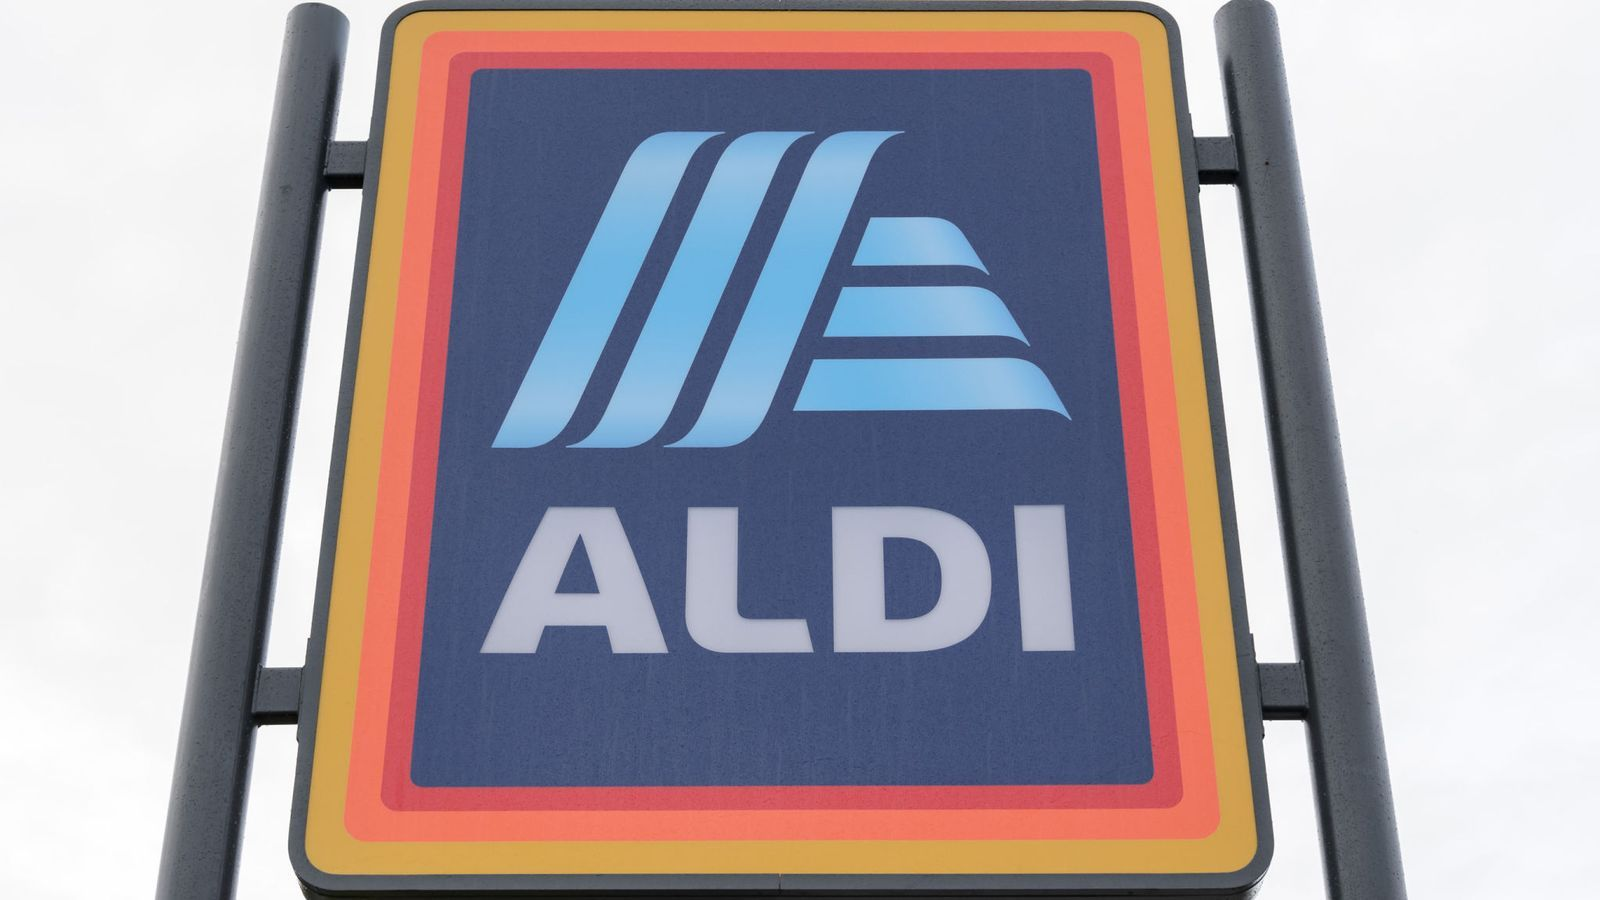 Aldi to raise employee pay and hire 3,800 more workers